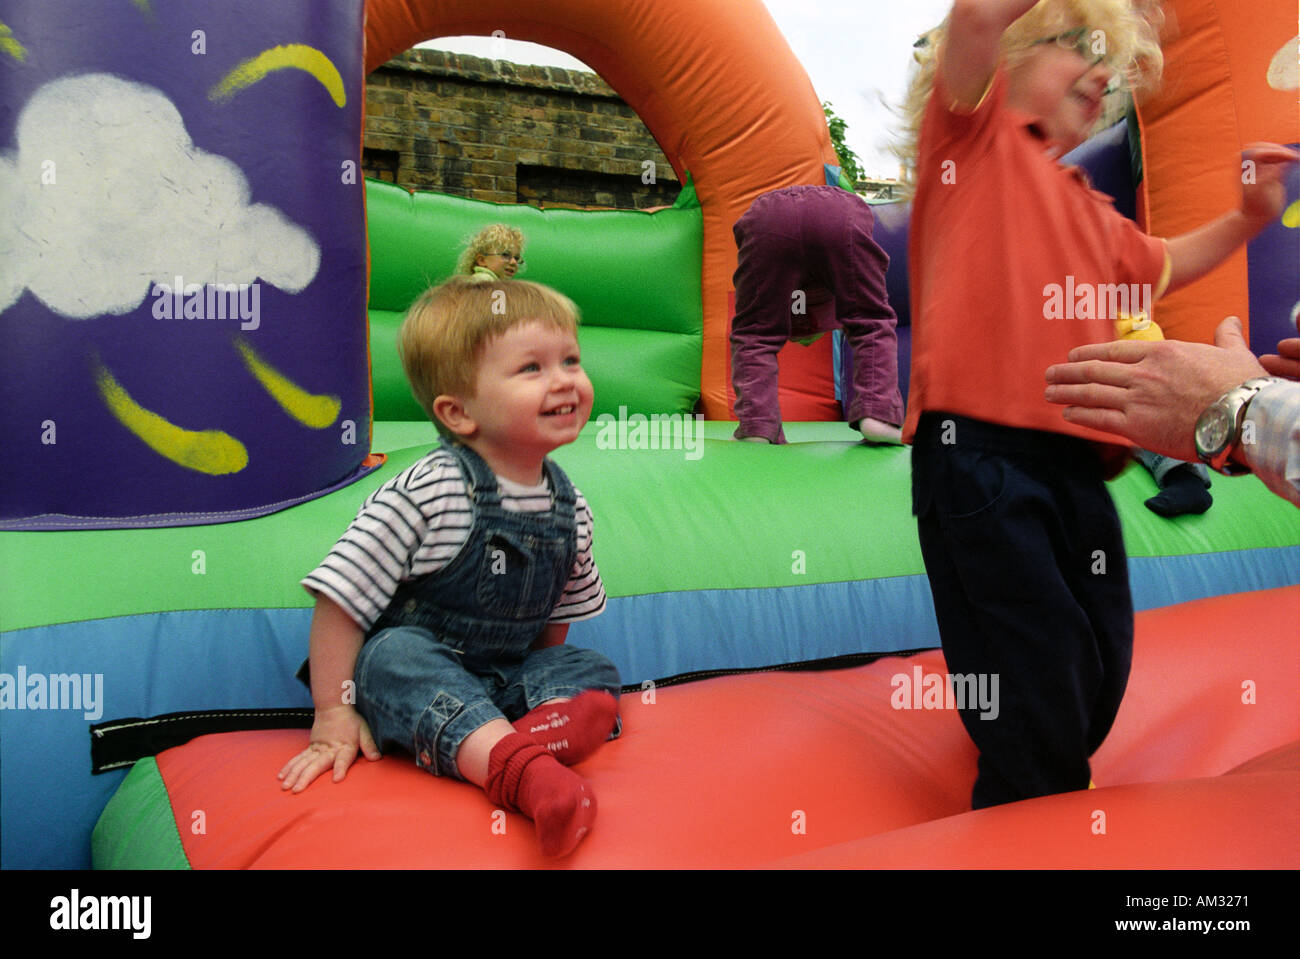 Young Children And Toddlers Playing On Soft Play Area Stock Photo